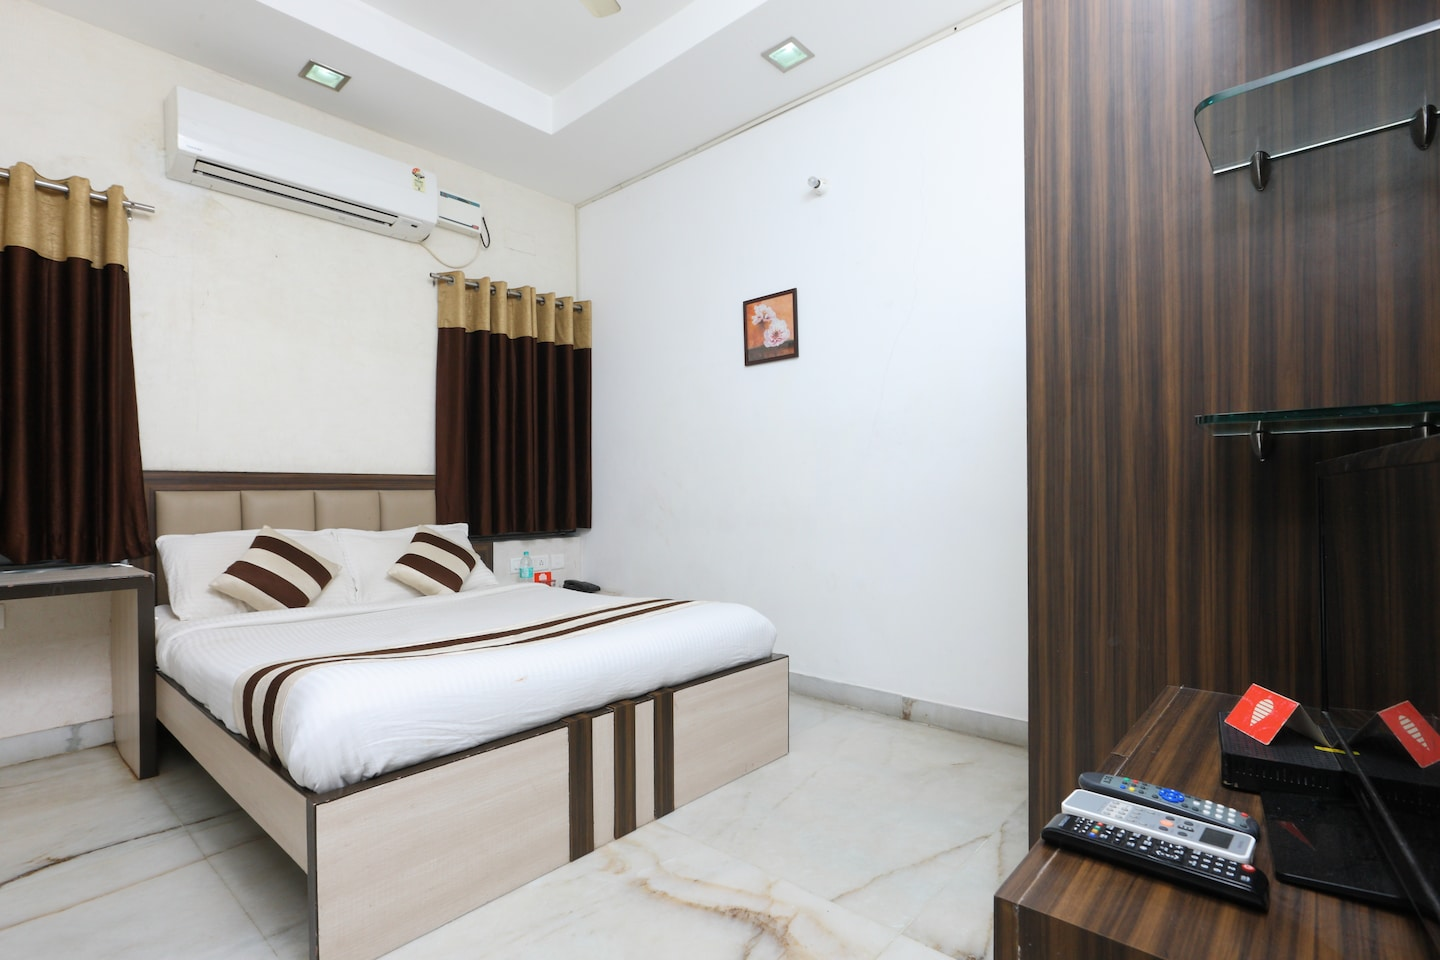 OYO 2282 Apartment Velachery Chennai - Chennai Hotel Reviews, Photos